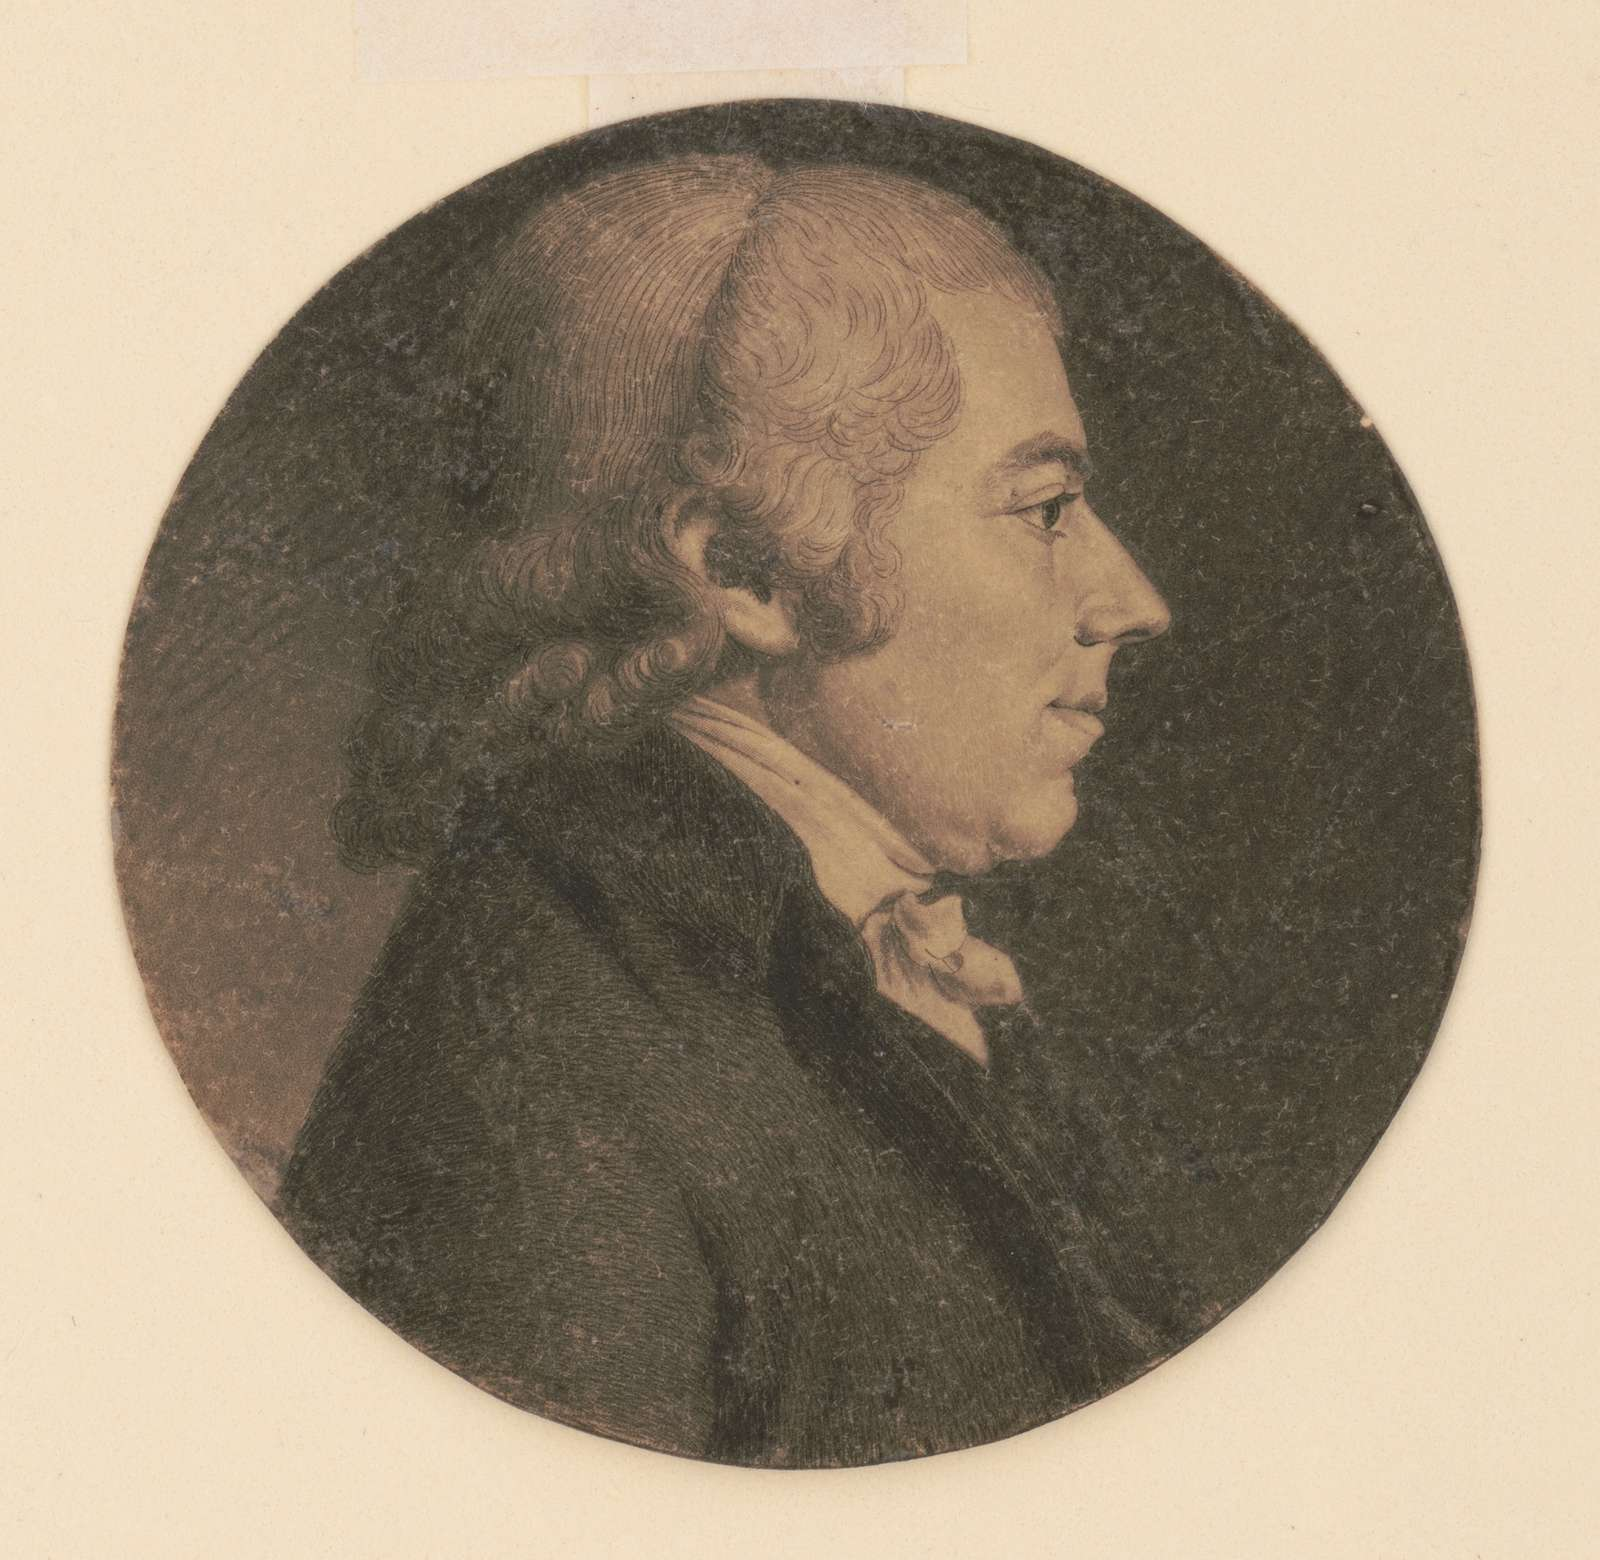 Matthew Clay, head-and-shoulders portrait, right profile